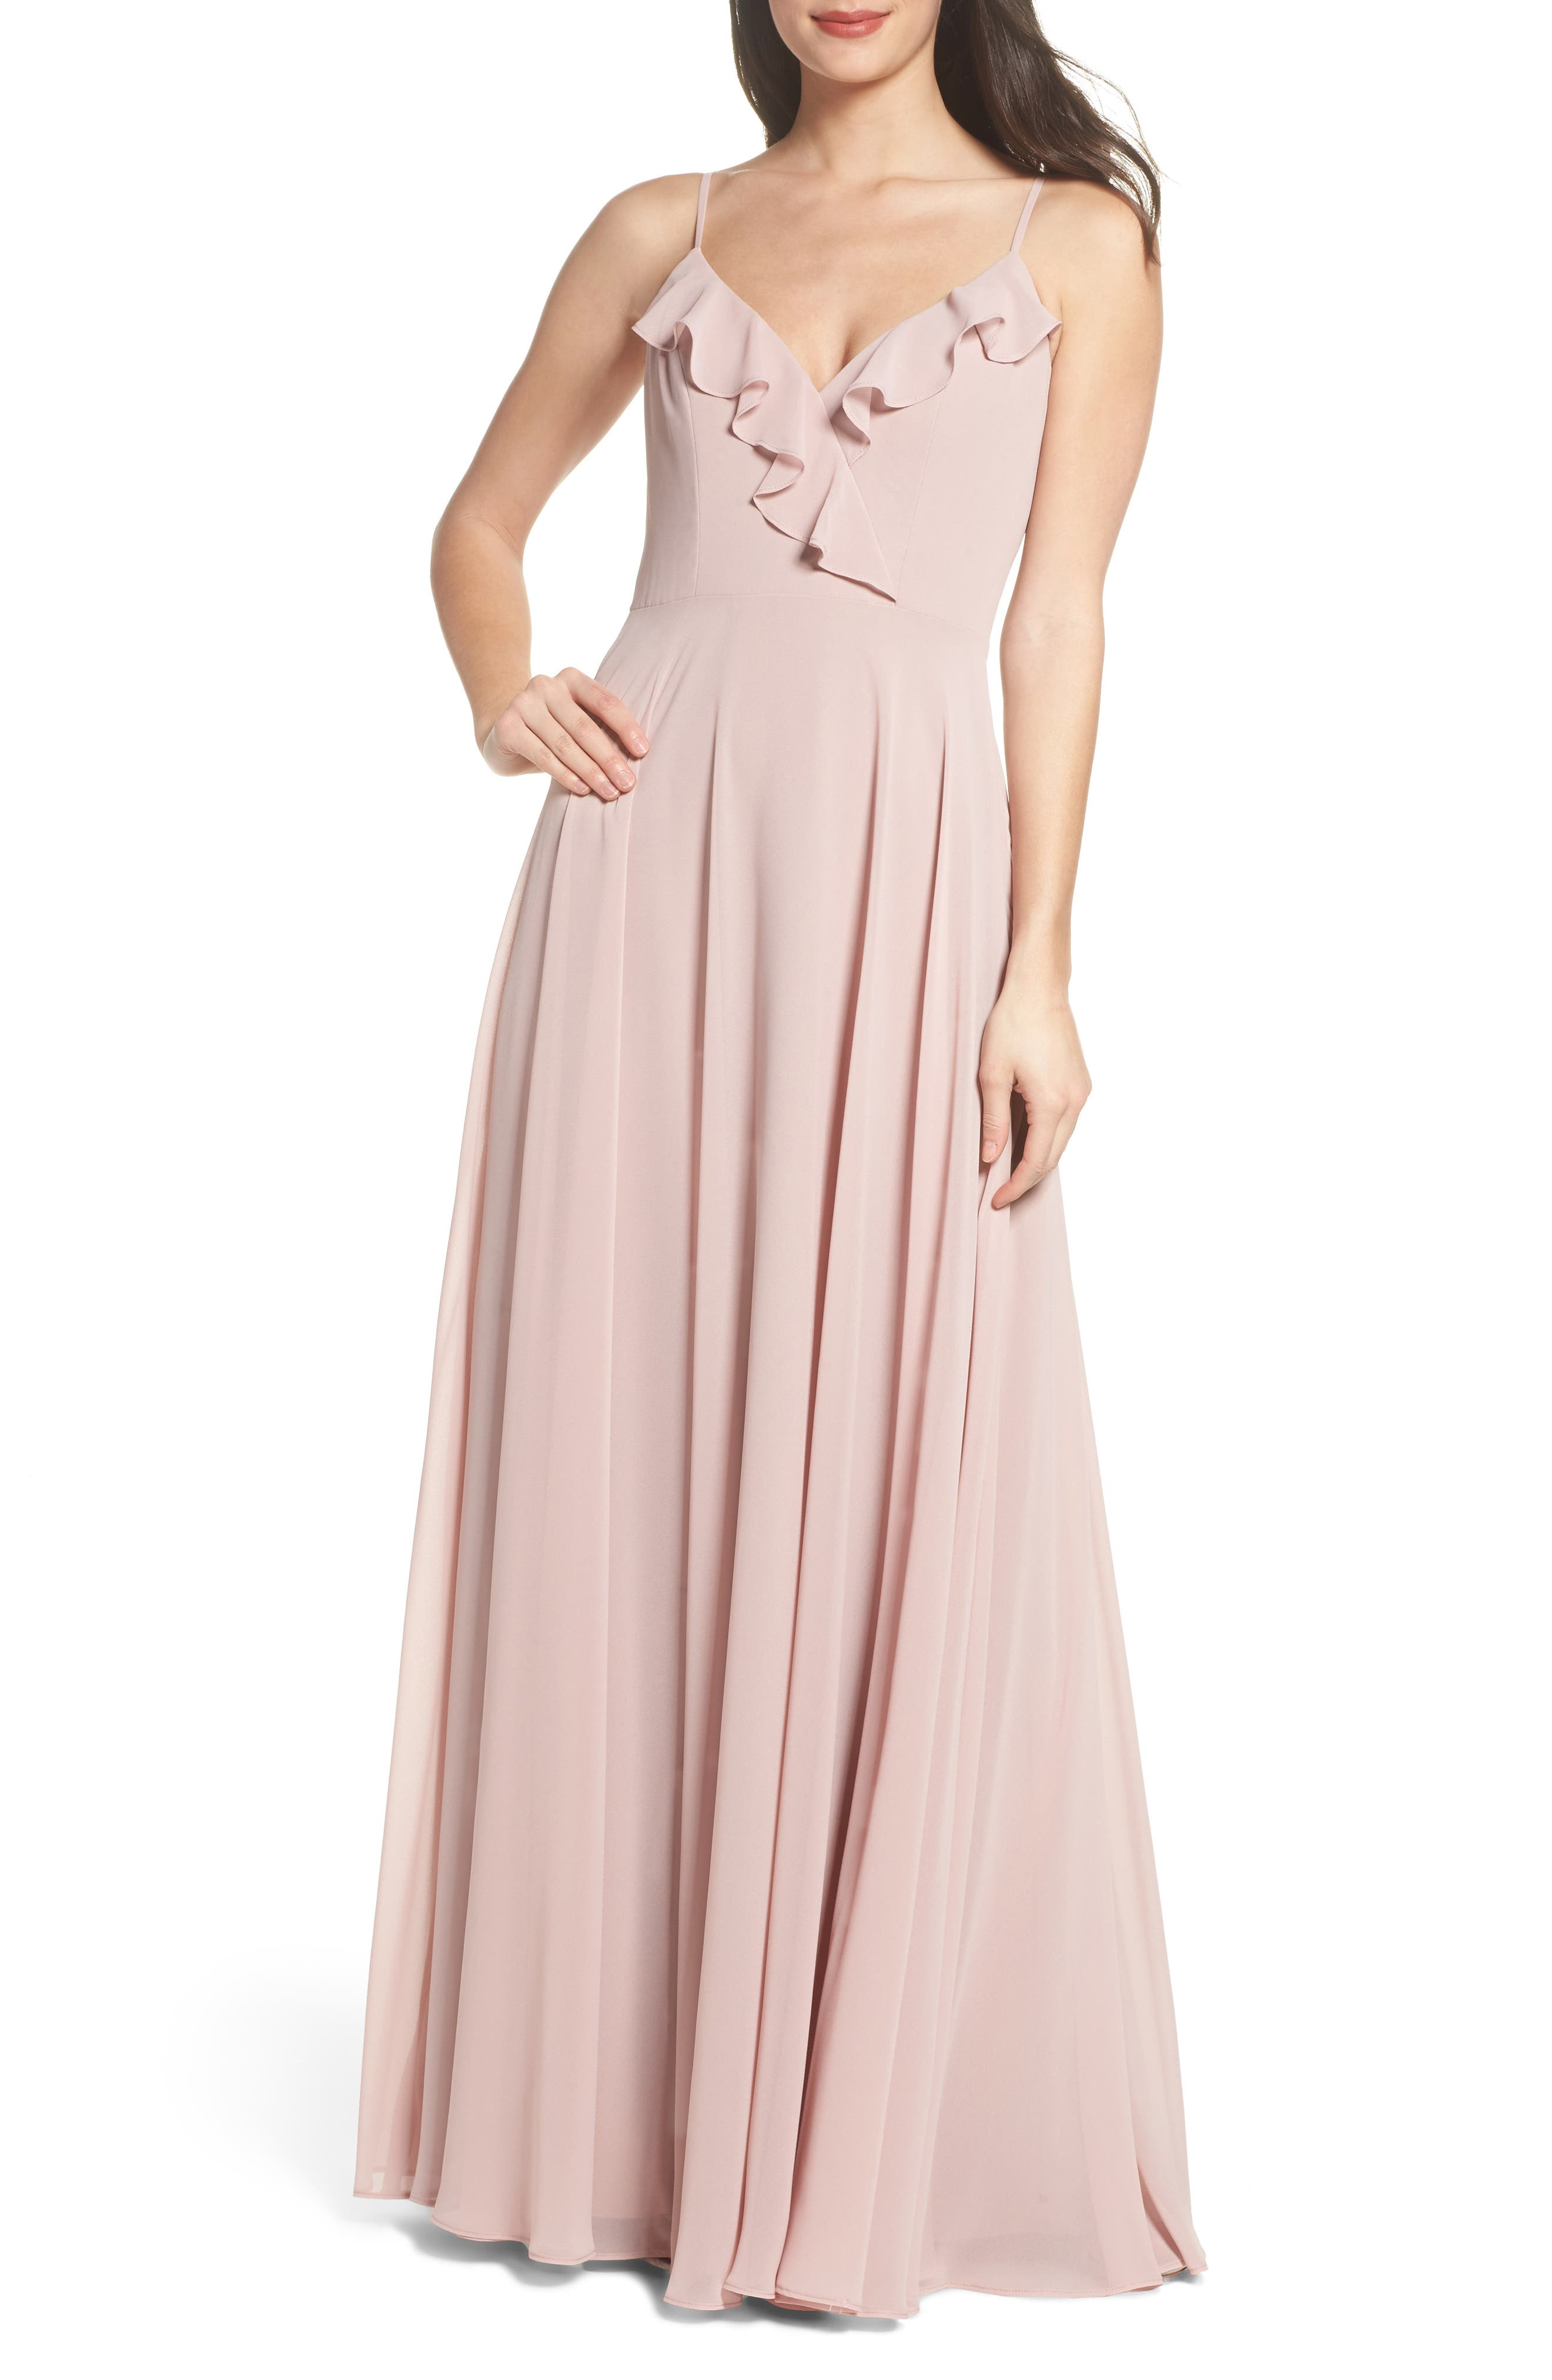 HAYLEY PAIGE OCCASIONS Ruffle Chiffon Gown, Main, color, DUSTY ROSE